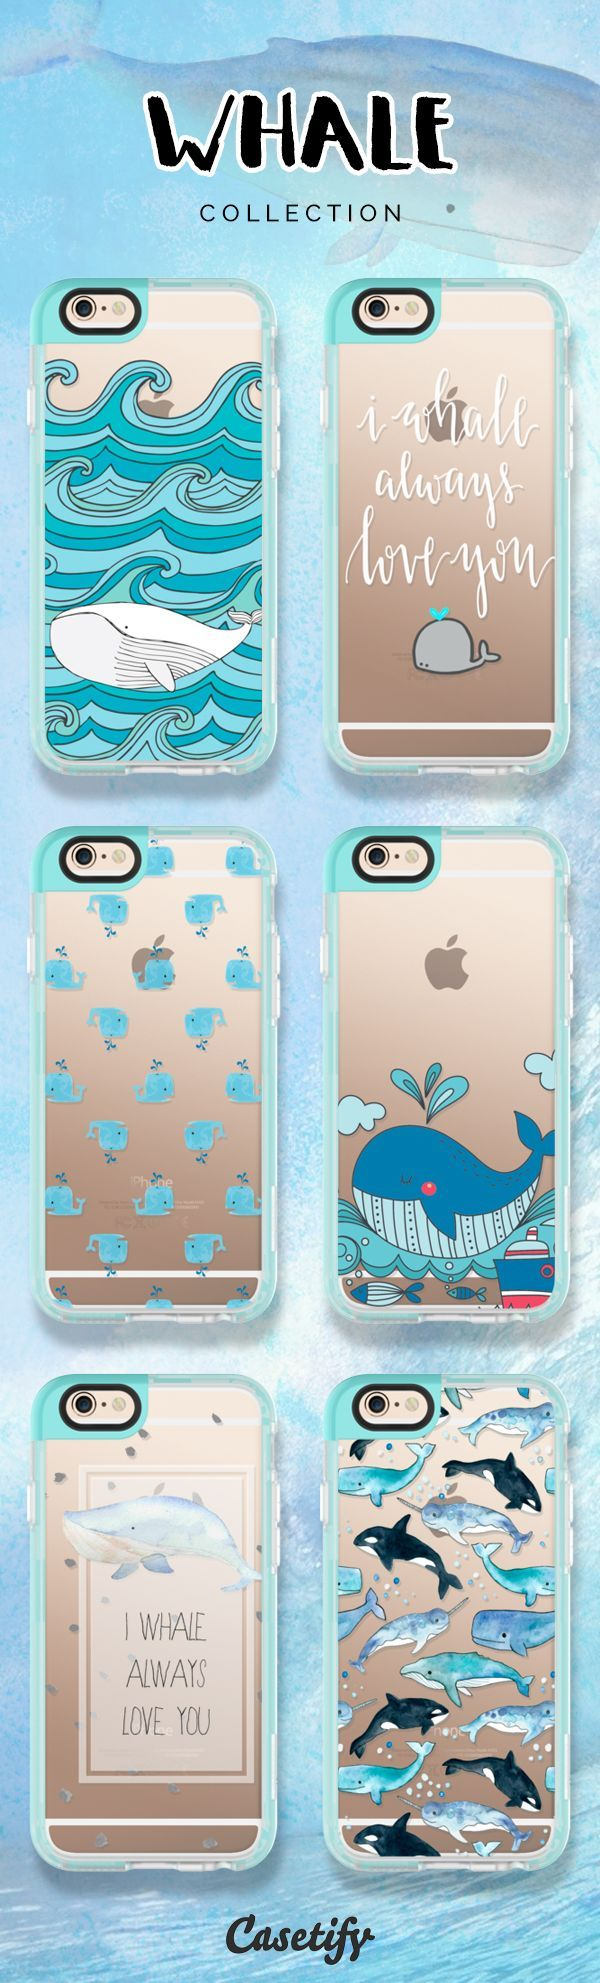 Casetify - Custom Cases iPhone 6S iPhone 6S Plus iPhone 6 iPhone 6 Plus Apple Watch iPhone 5S iPhone 5C iPhone 4S iPad iPod Touch Samsung Galaxy formerly Casetagram - http://www.popularaz.com/casetify-custom-cases-iphone-6s-iphone- http://amzn.to/2qZ3RzU